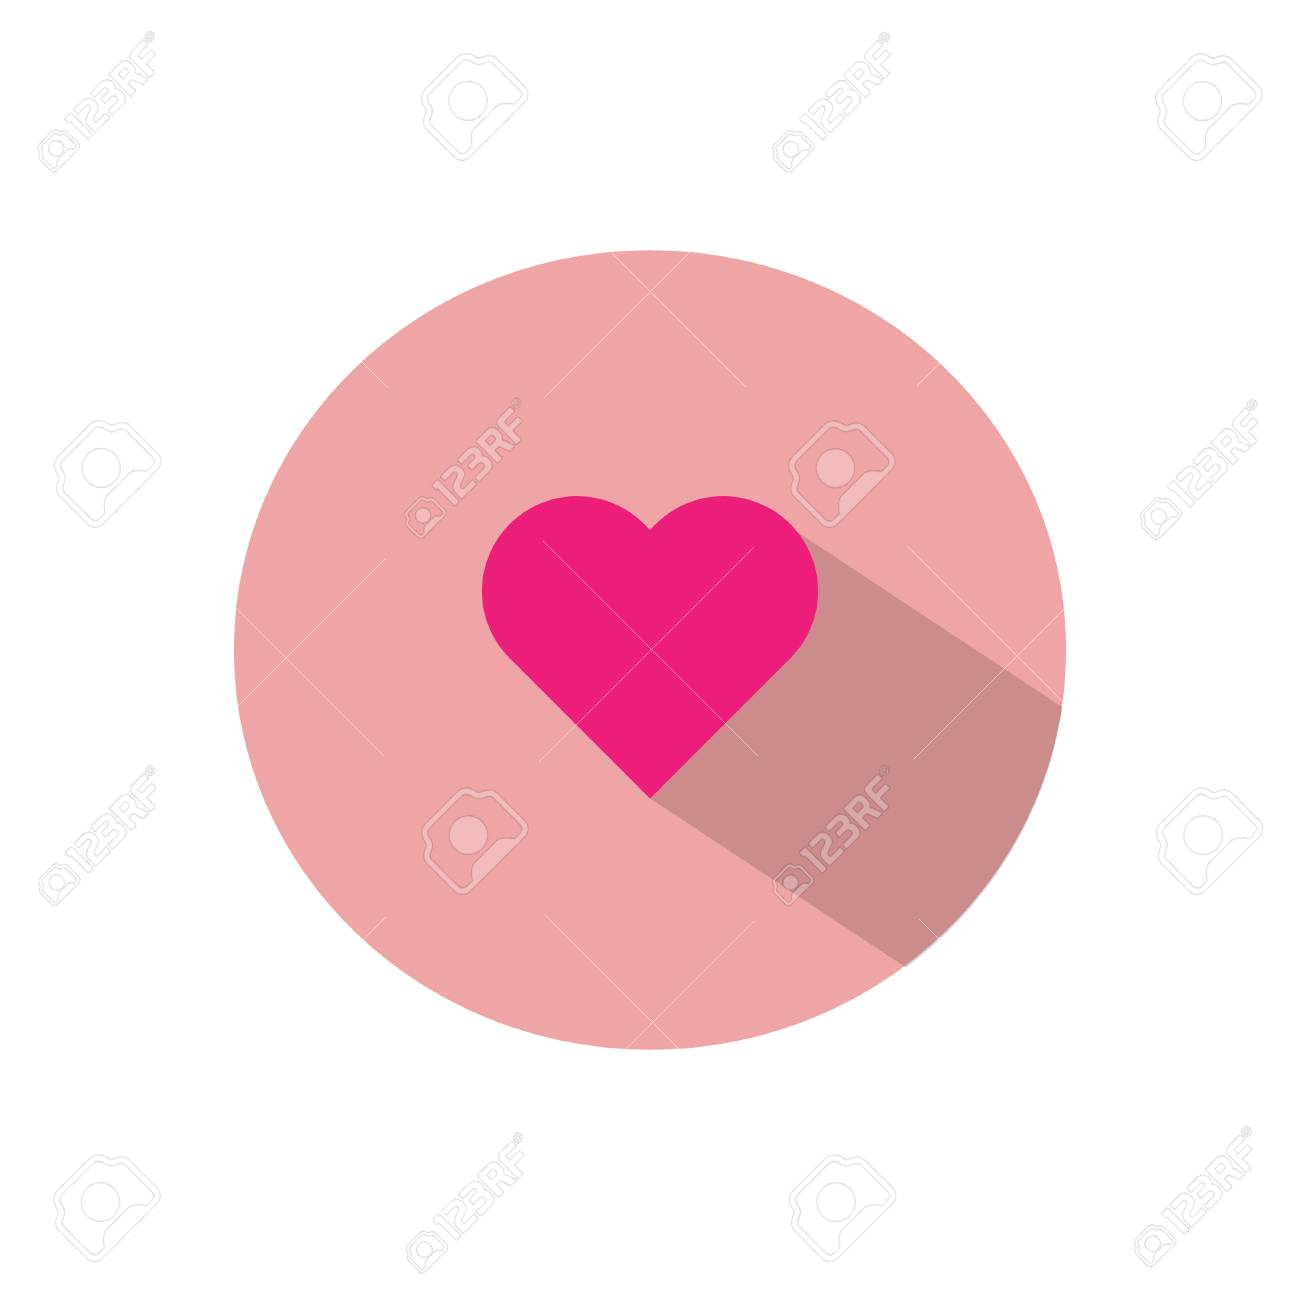 Heart Emoticon Symbol Flat Style Shadow Royalty Free Cliparts